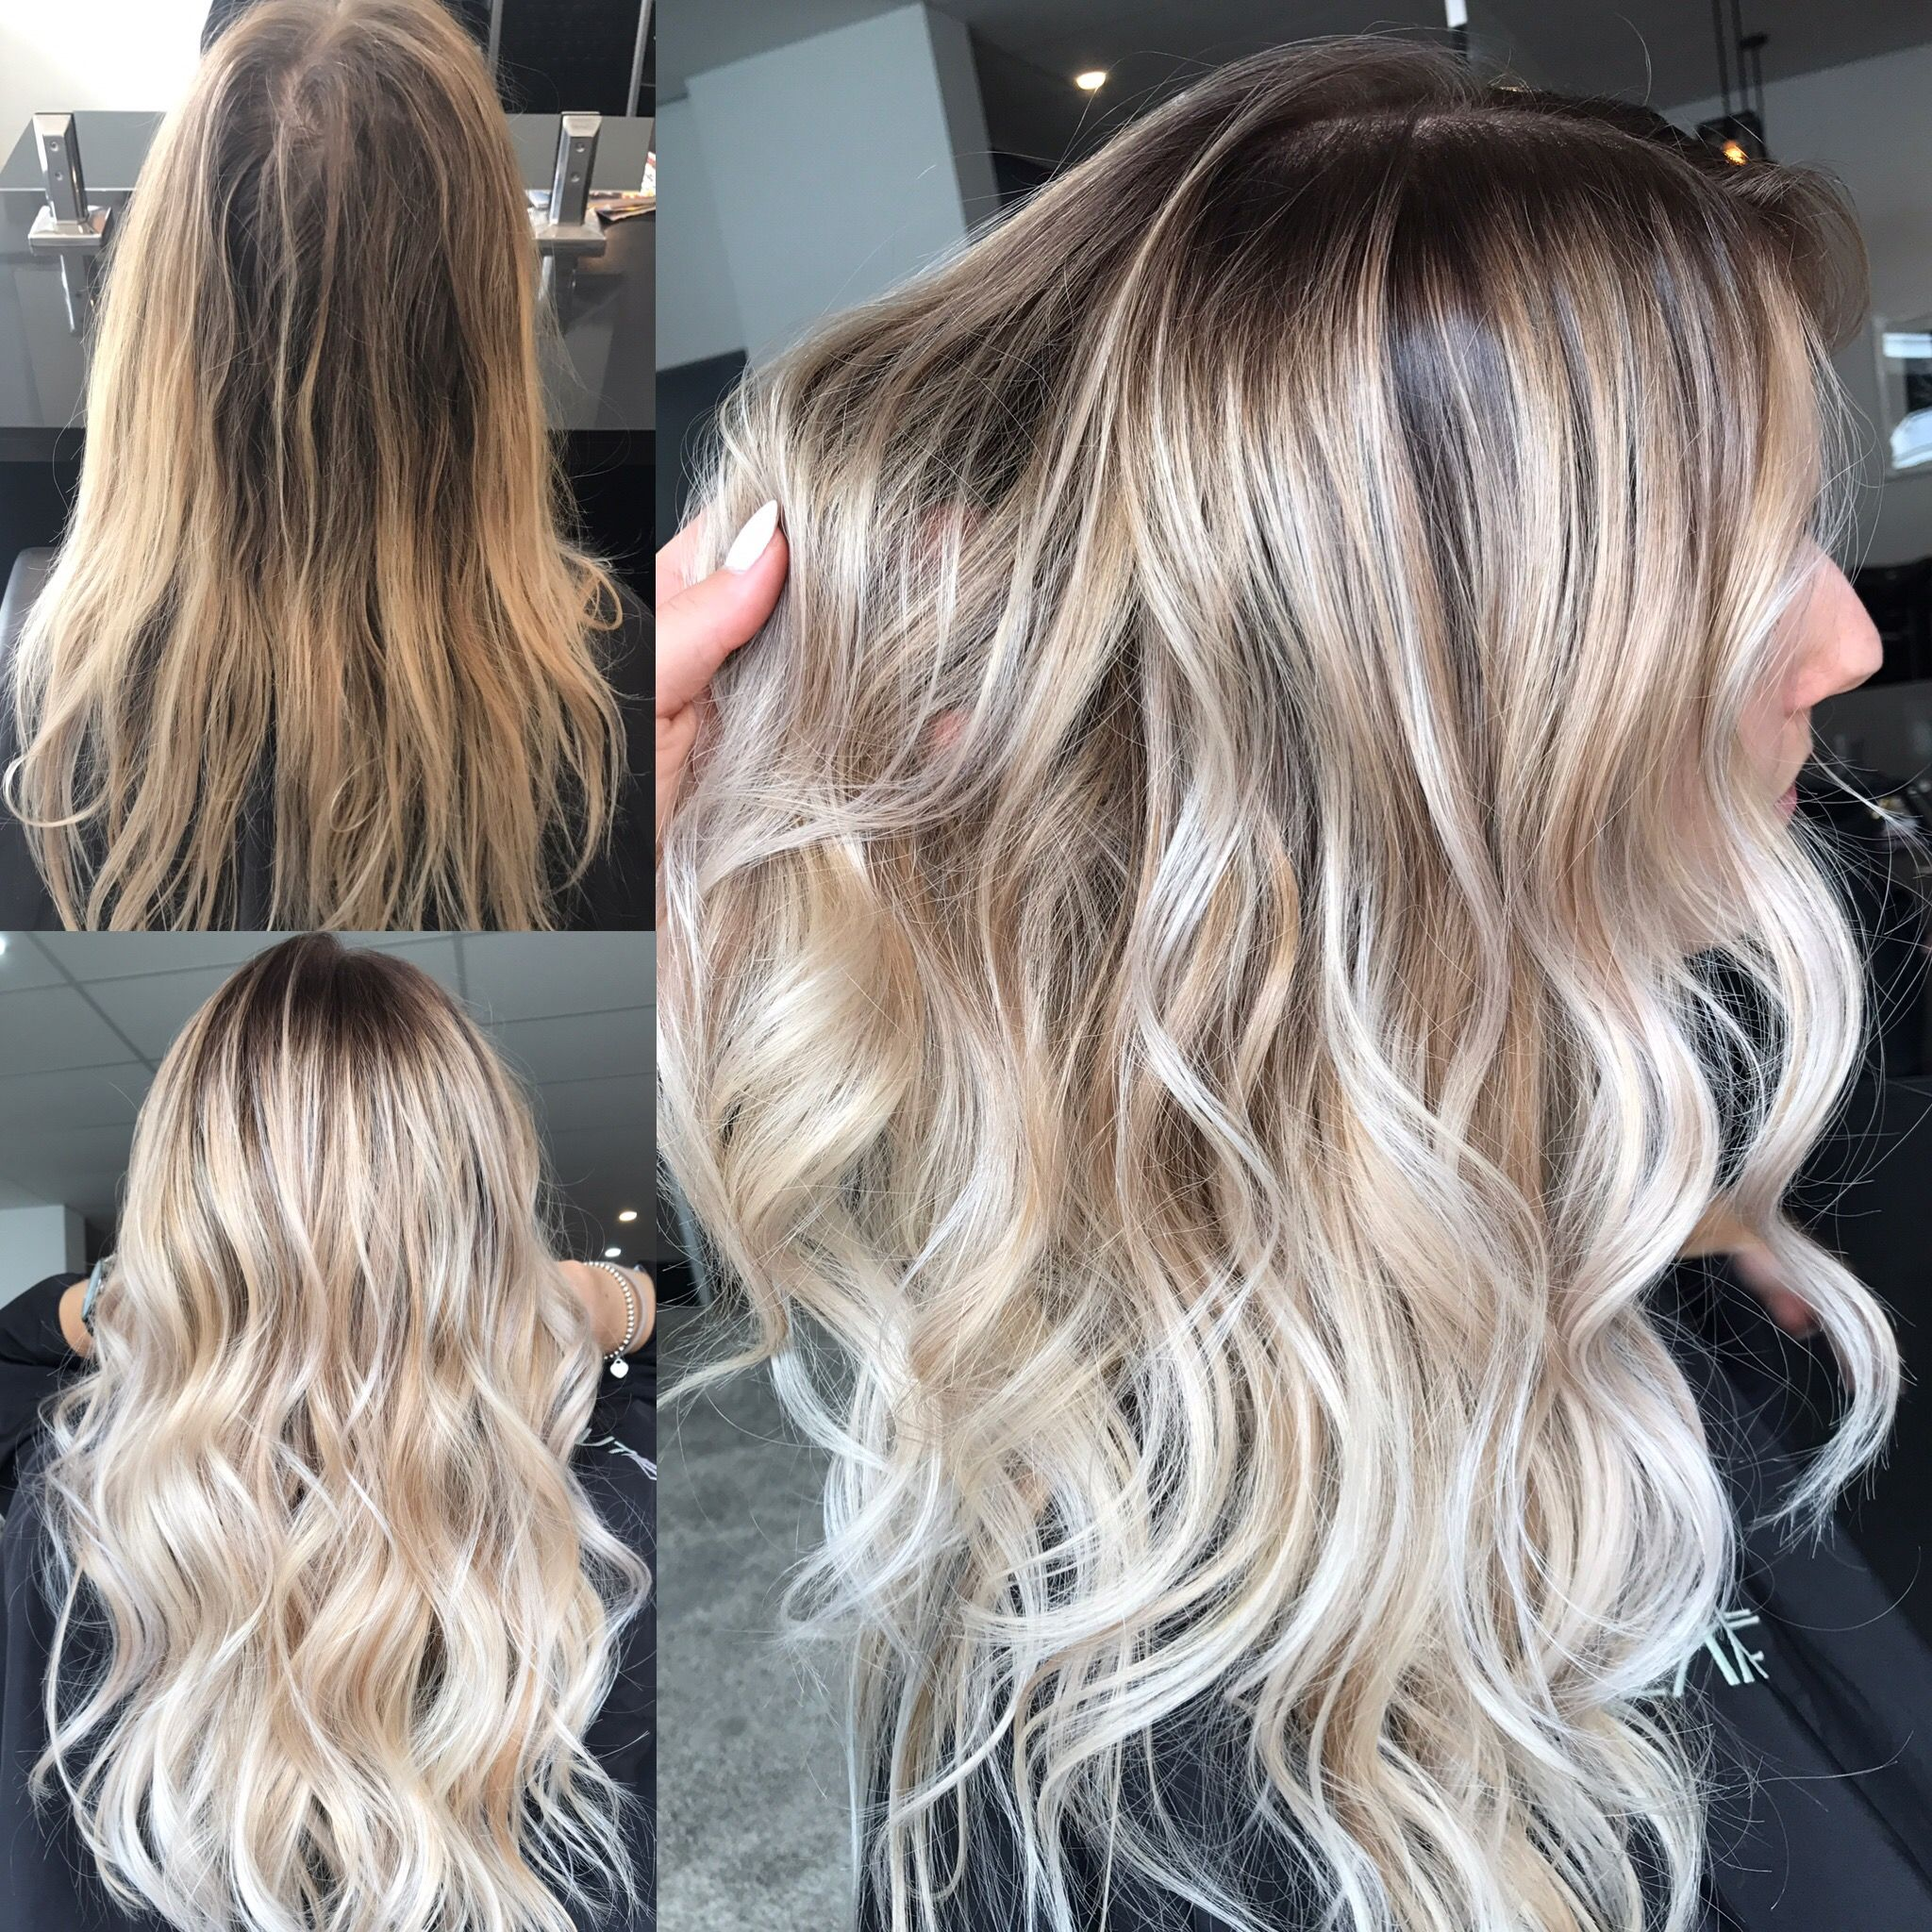 40 Blonde Hair Color Ideas With Balayage Highlights: Instagram @hairbykaitlinjade Blonde Balayage, Long Hair